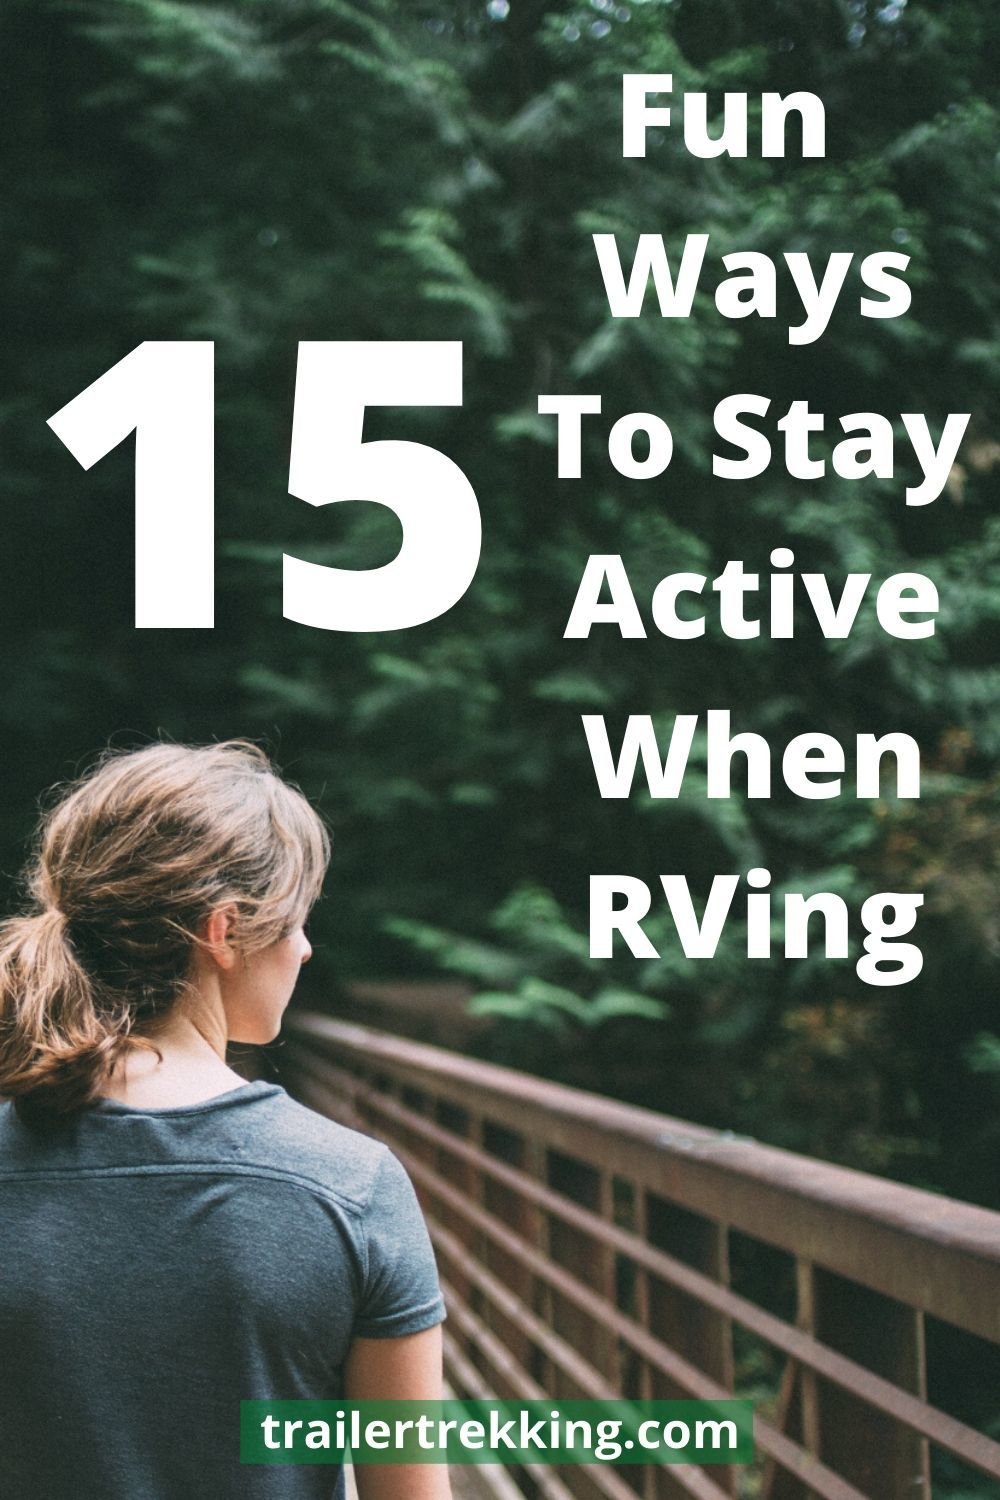 Do you like to camp and RV but end up eating too much and just sitting around the camp? We share 15 great ways to have fun staying active while RVing. | trailertrekking.com #trailertrekking #rving #rvlife #stayingactive #camping #rvactivities #campingfun #campingactivities #stayingfit #exercise #stayactive #rvfun #funwhenrving